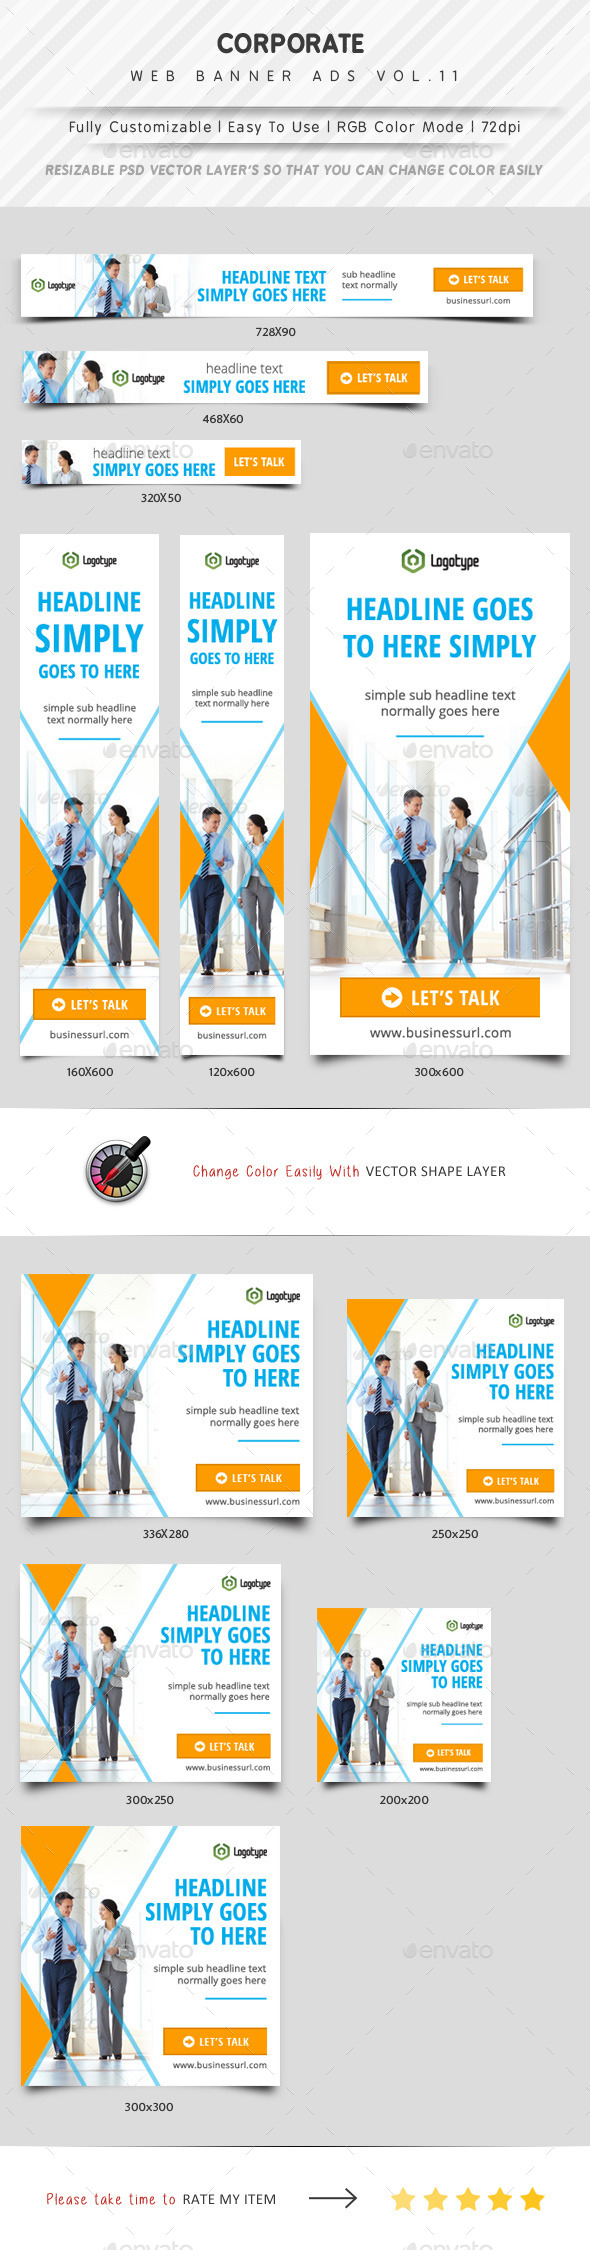 Corporate Web Banner Ads Vol.11 - Banners & Ads Web Elements